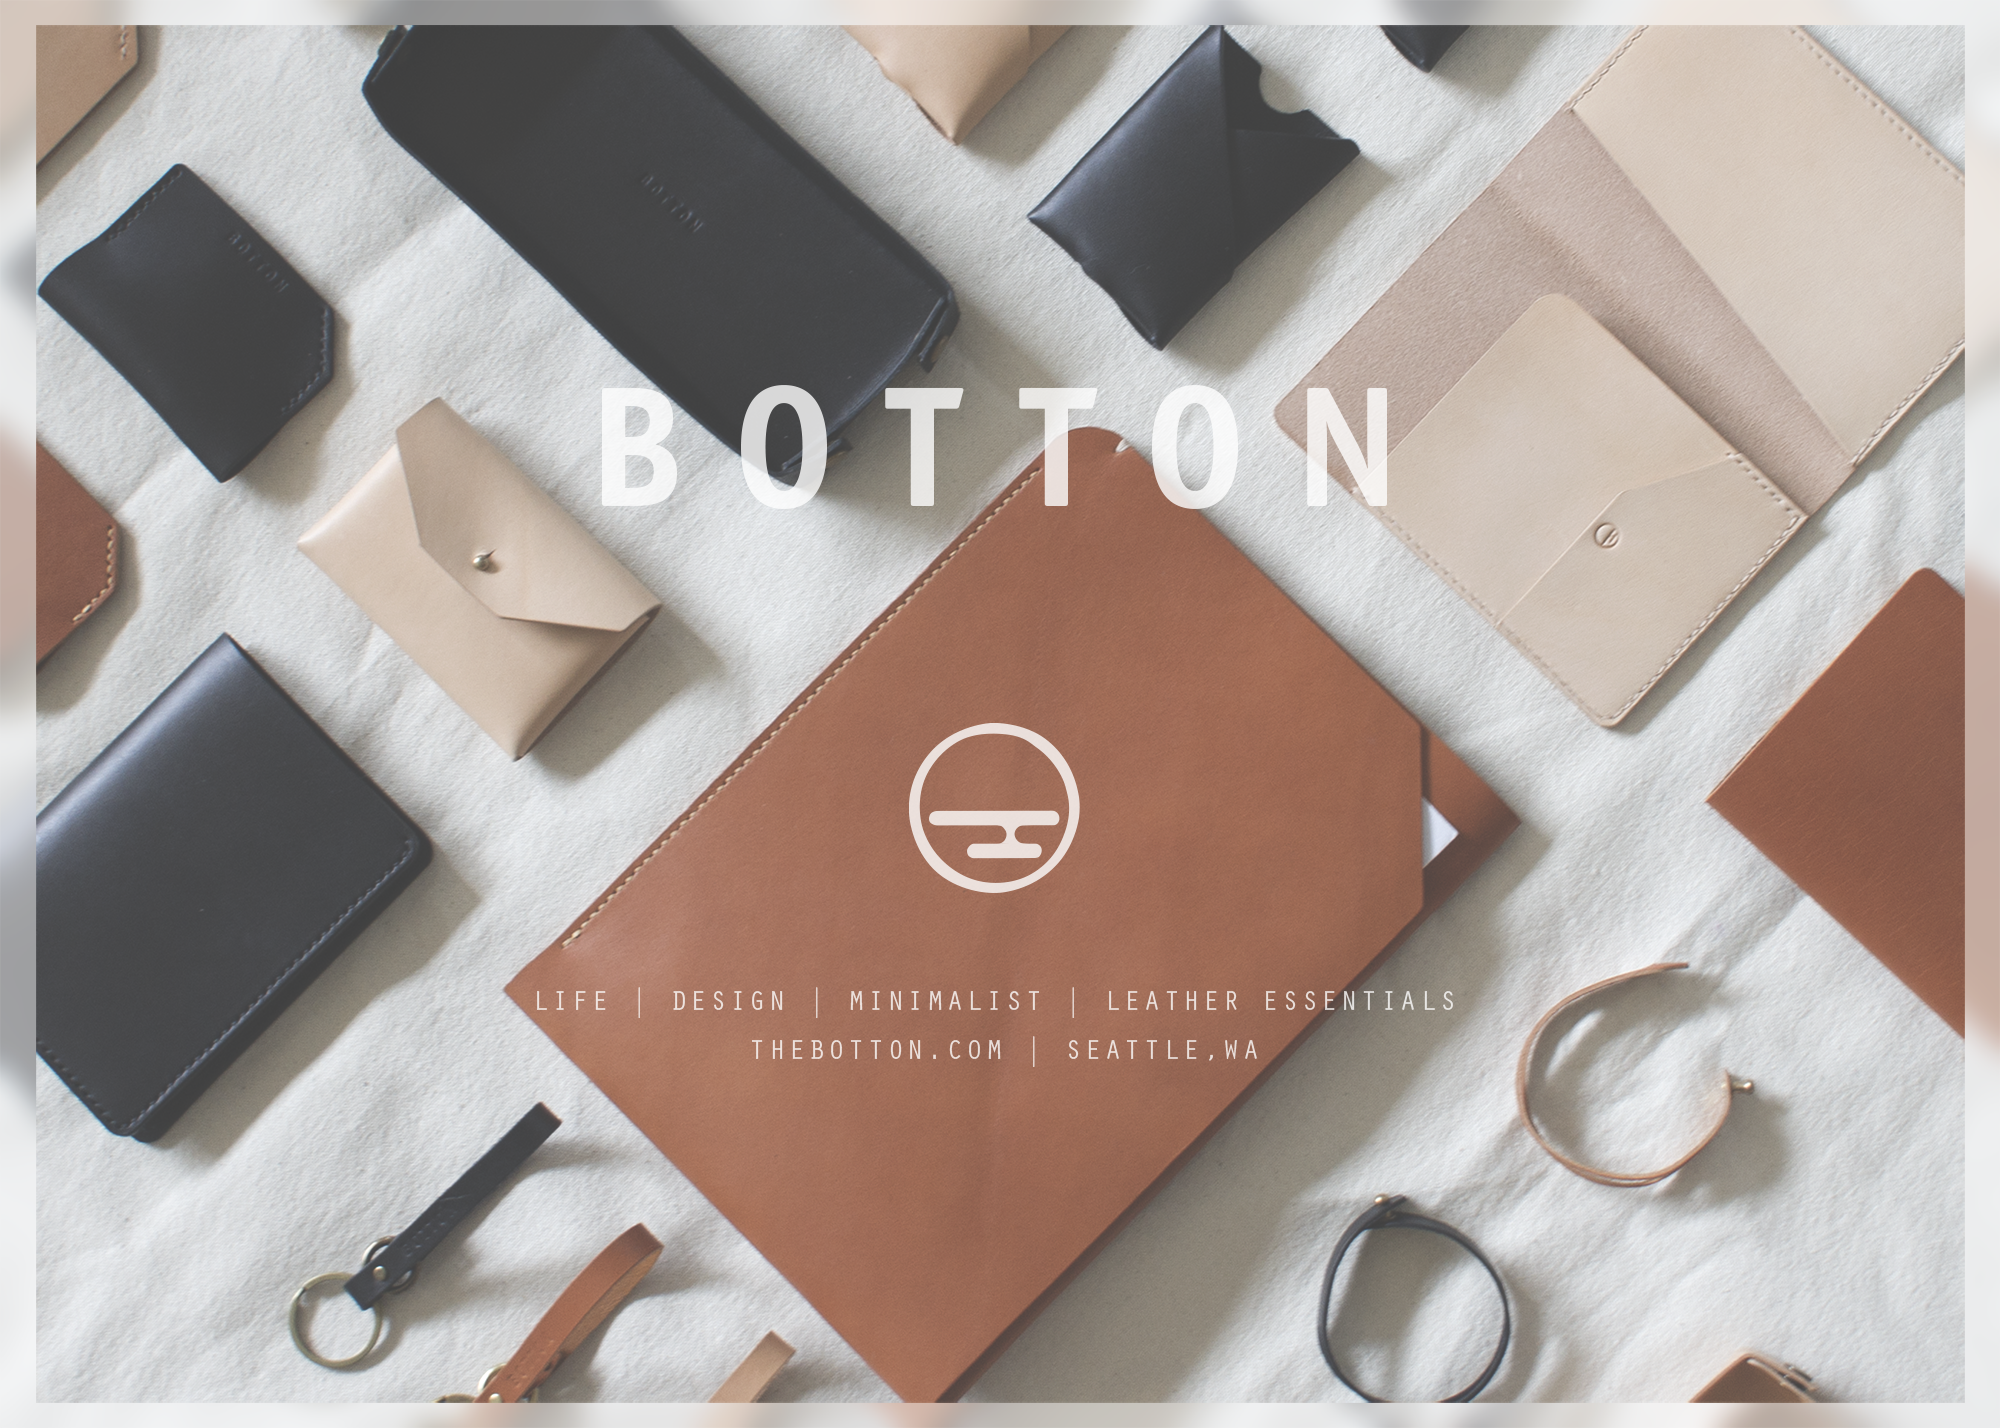 Botton Studio